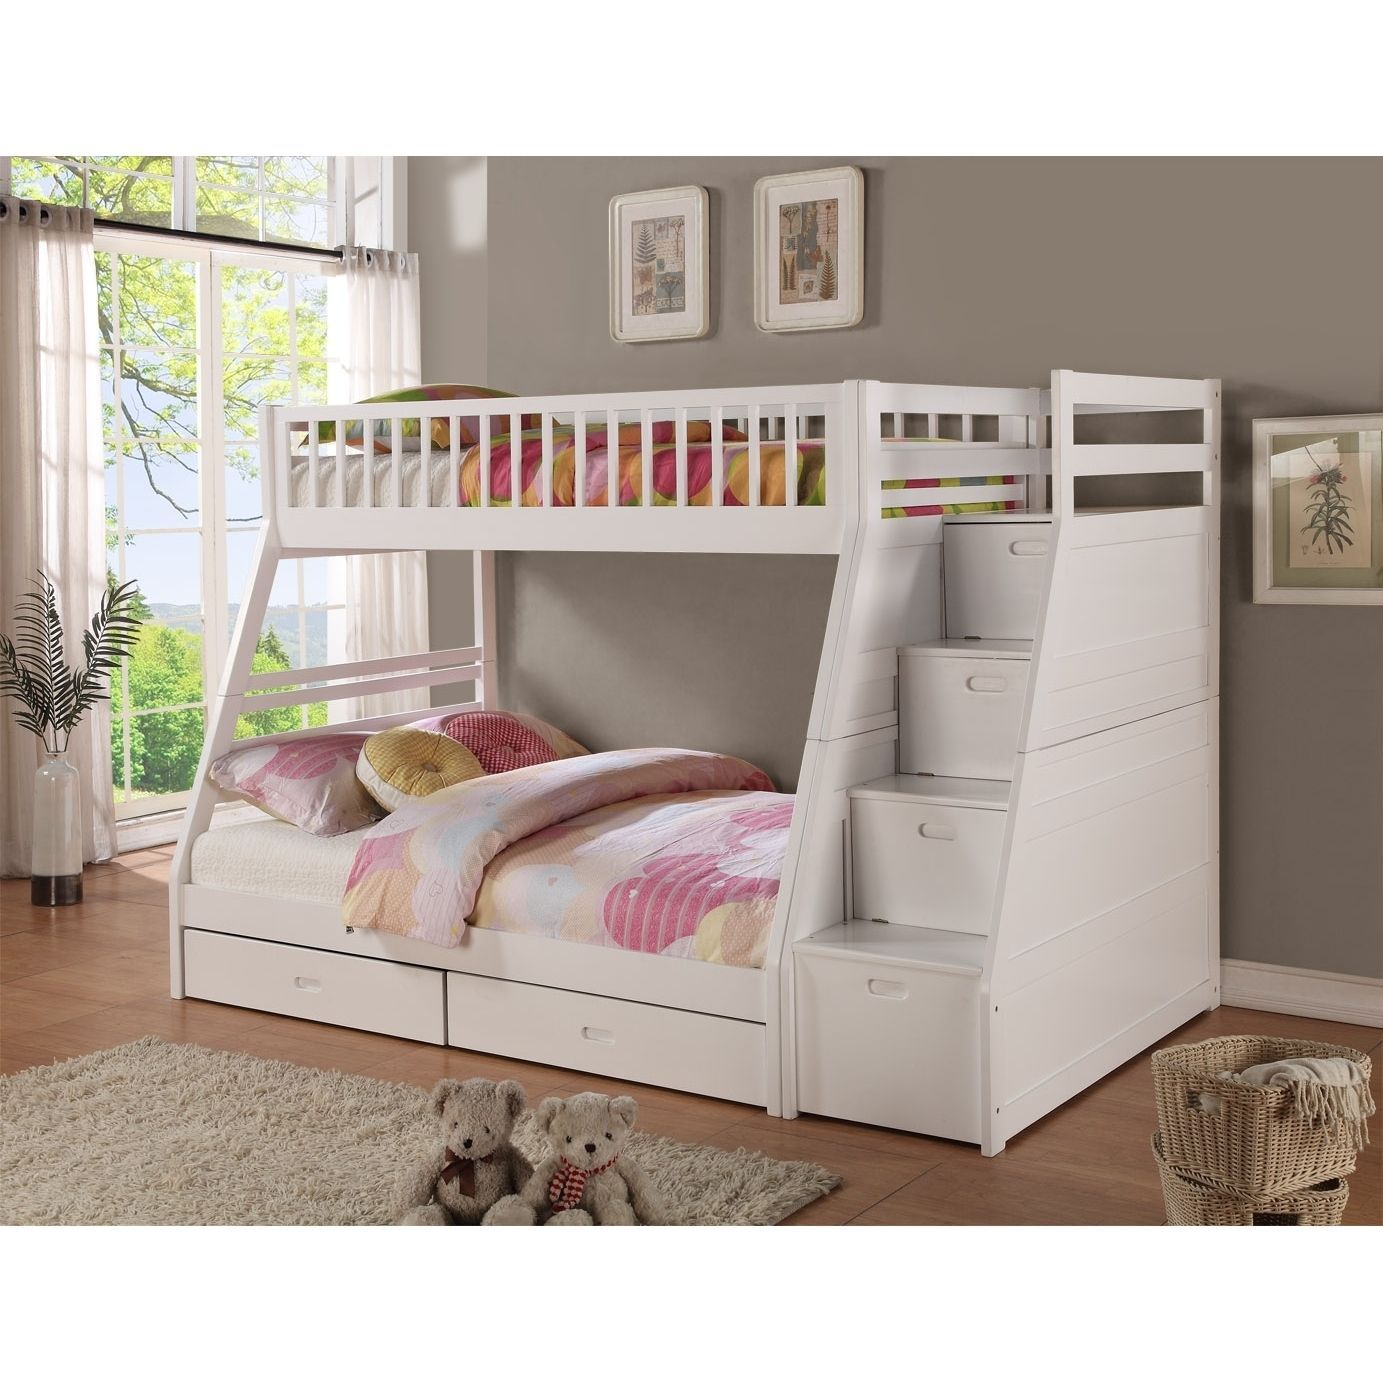 American Furniture Classics Casual White Collection White Twin Overfull Bunk Bed With 3 Underbed Drawers 0218r Tfw The Home Depot In 2021 Bunk Bed With Trundle White Bunk Beds Twin Over Full Bunk